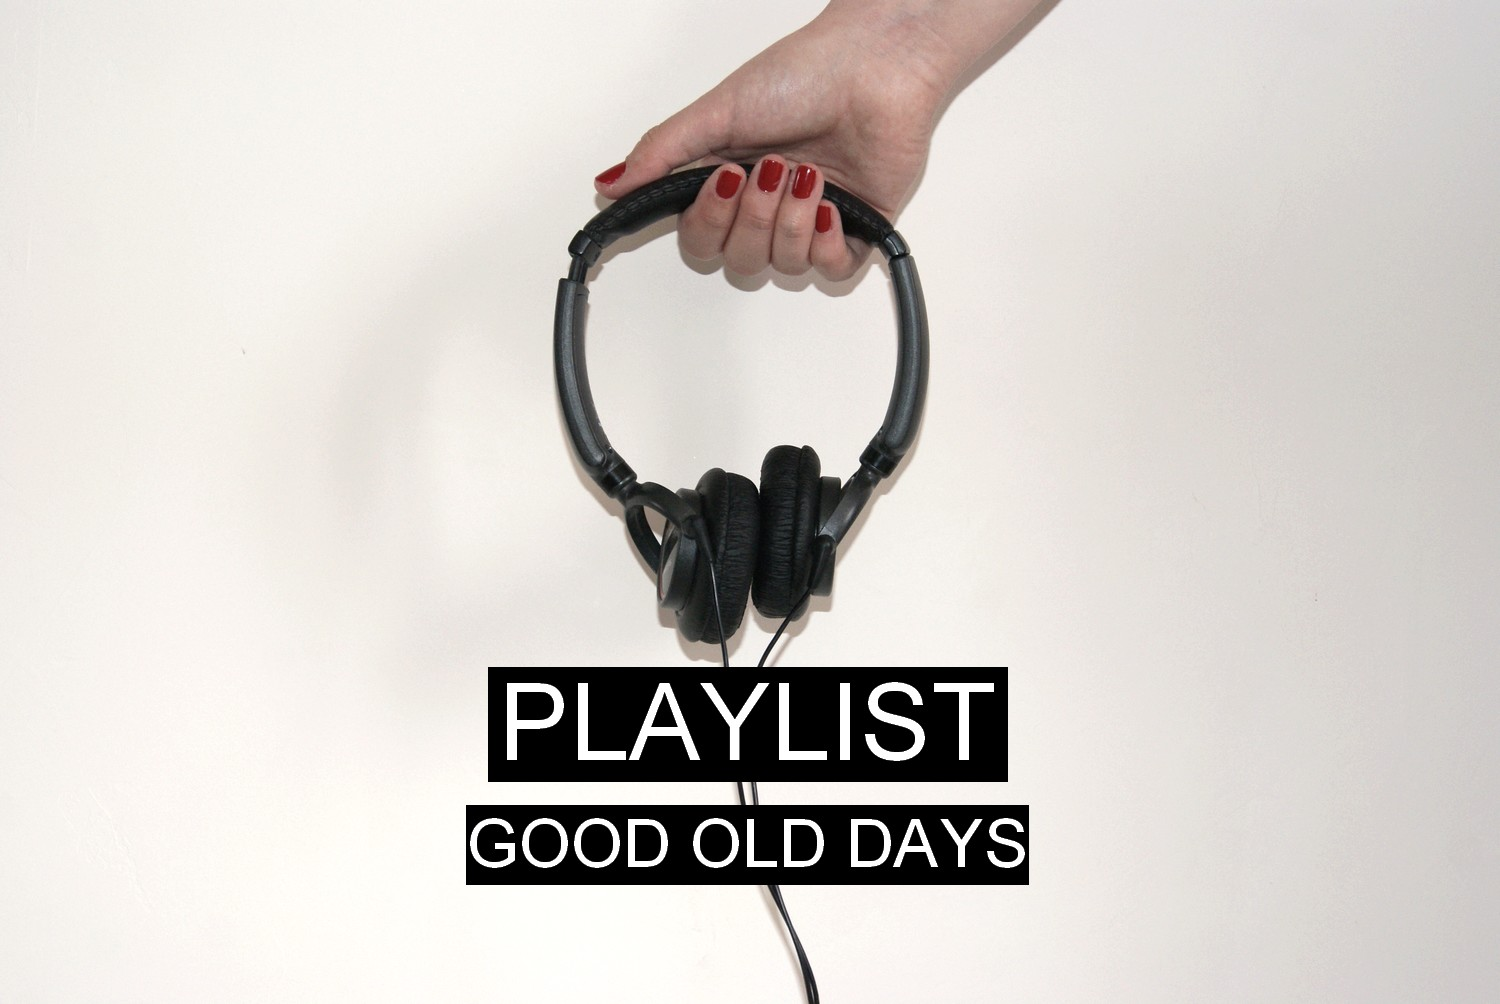 https://mailyseven.blogspot.fr/2016/06/playlist-good-old-days.html